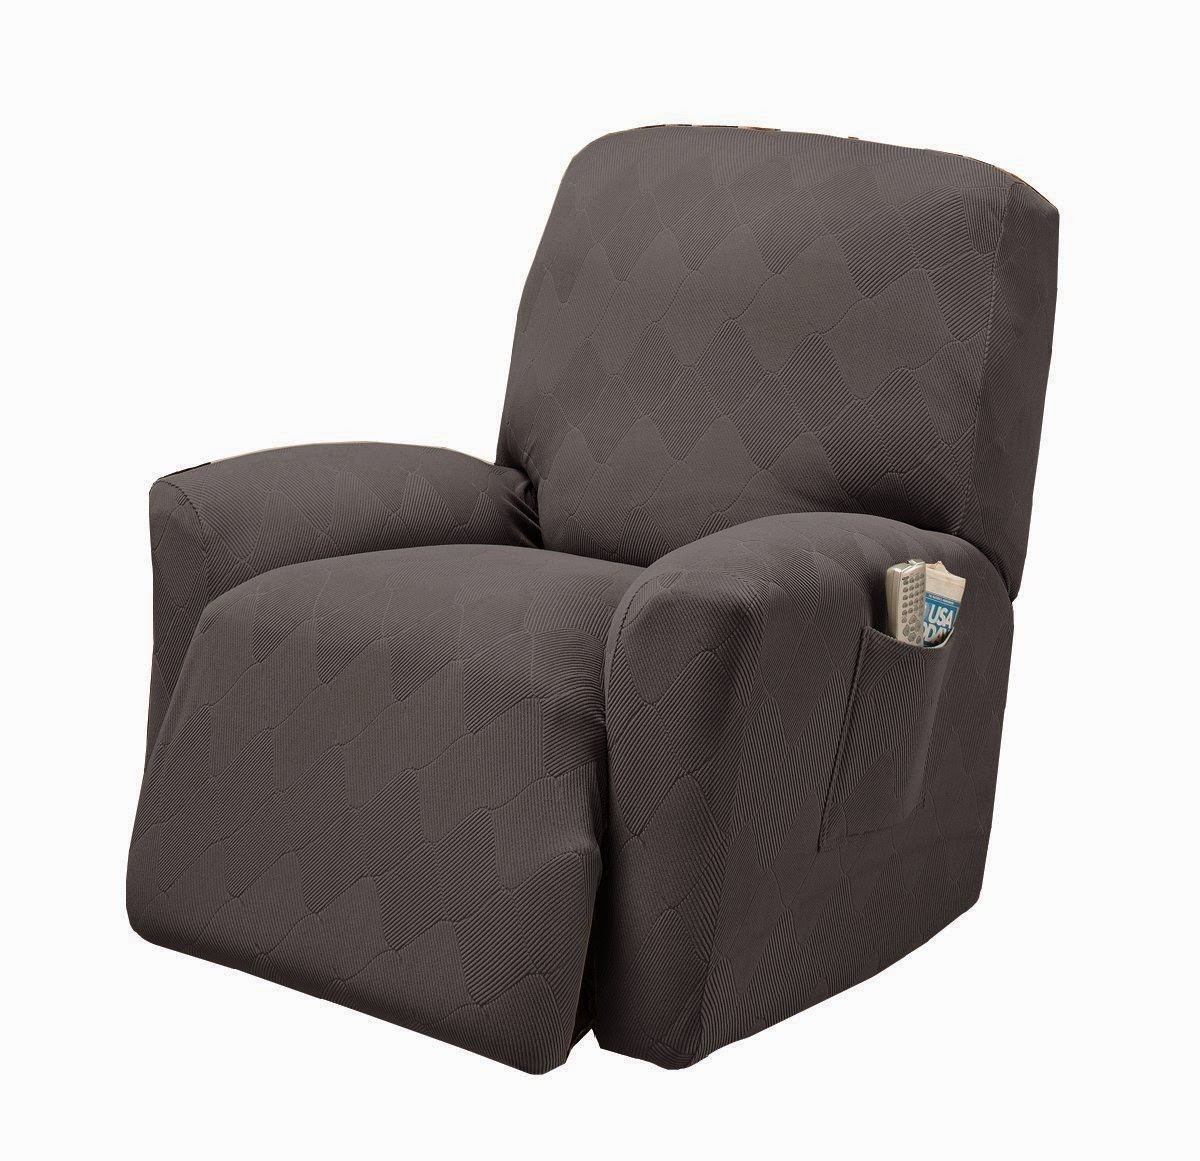 The Best Reclining Sofa Reviews Reclining Sofa Slipcovers Dual